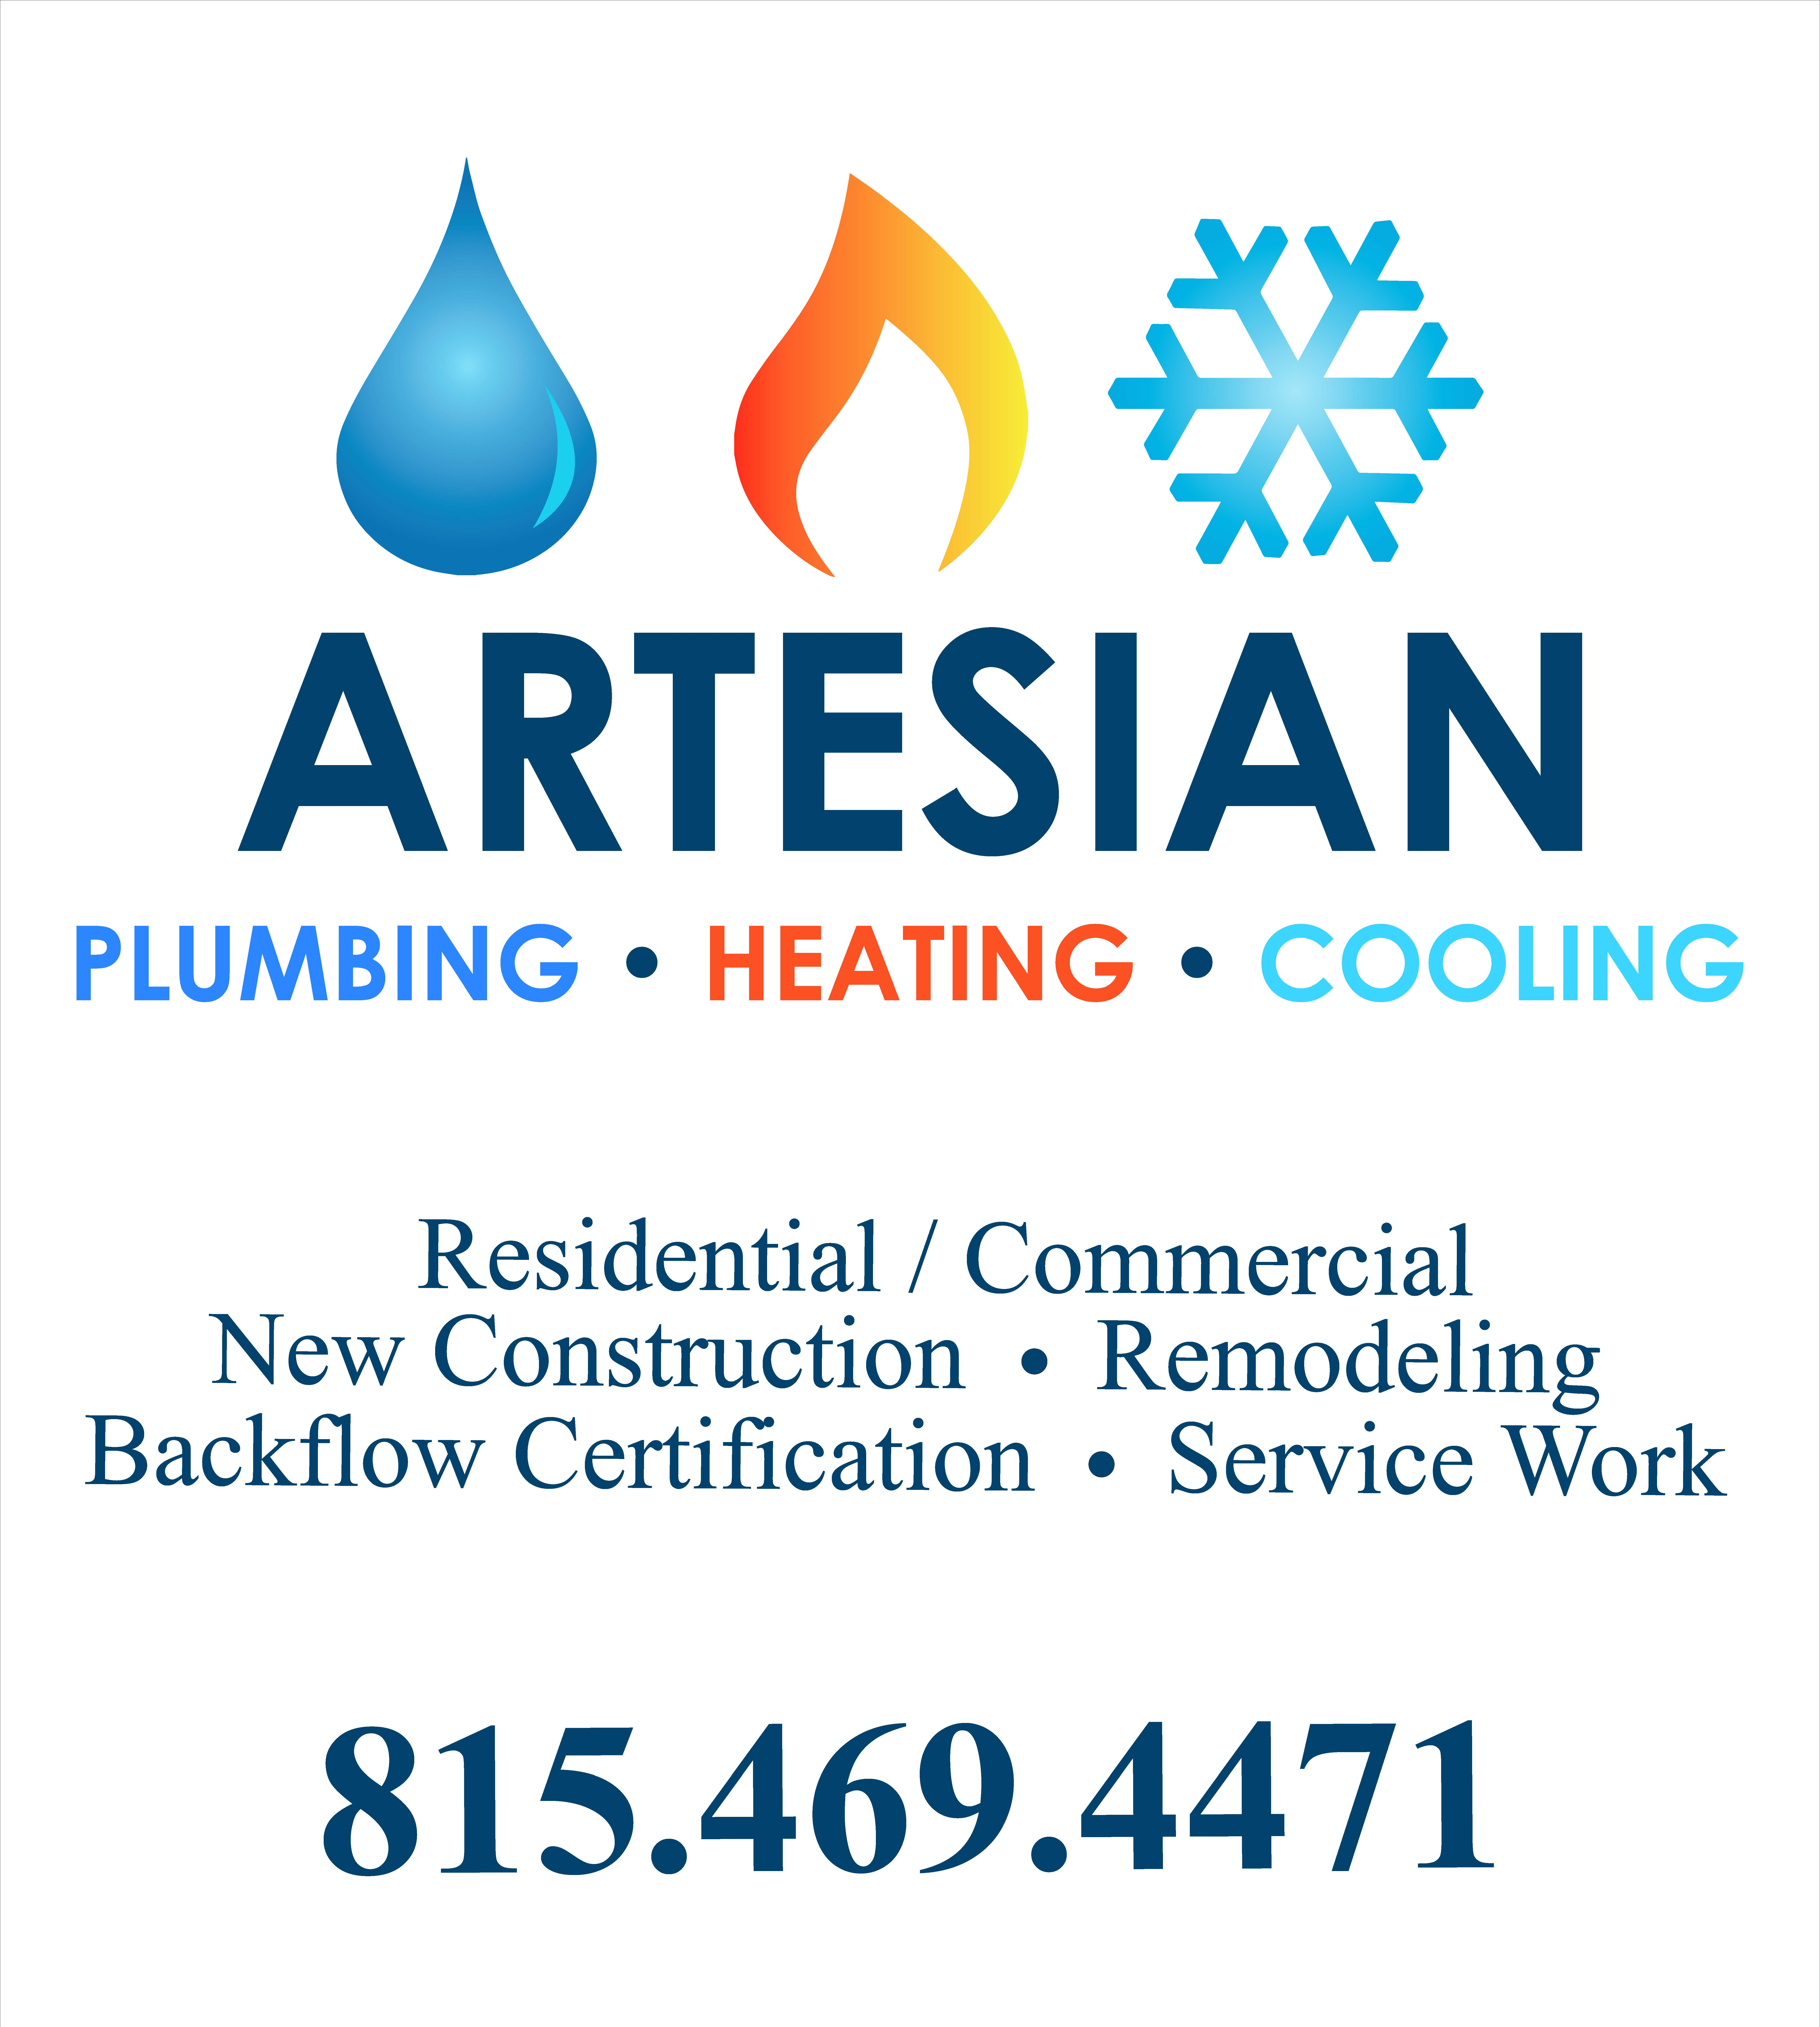 Artesian Plumbing, Heating, & Cooling